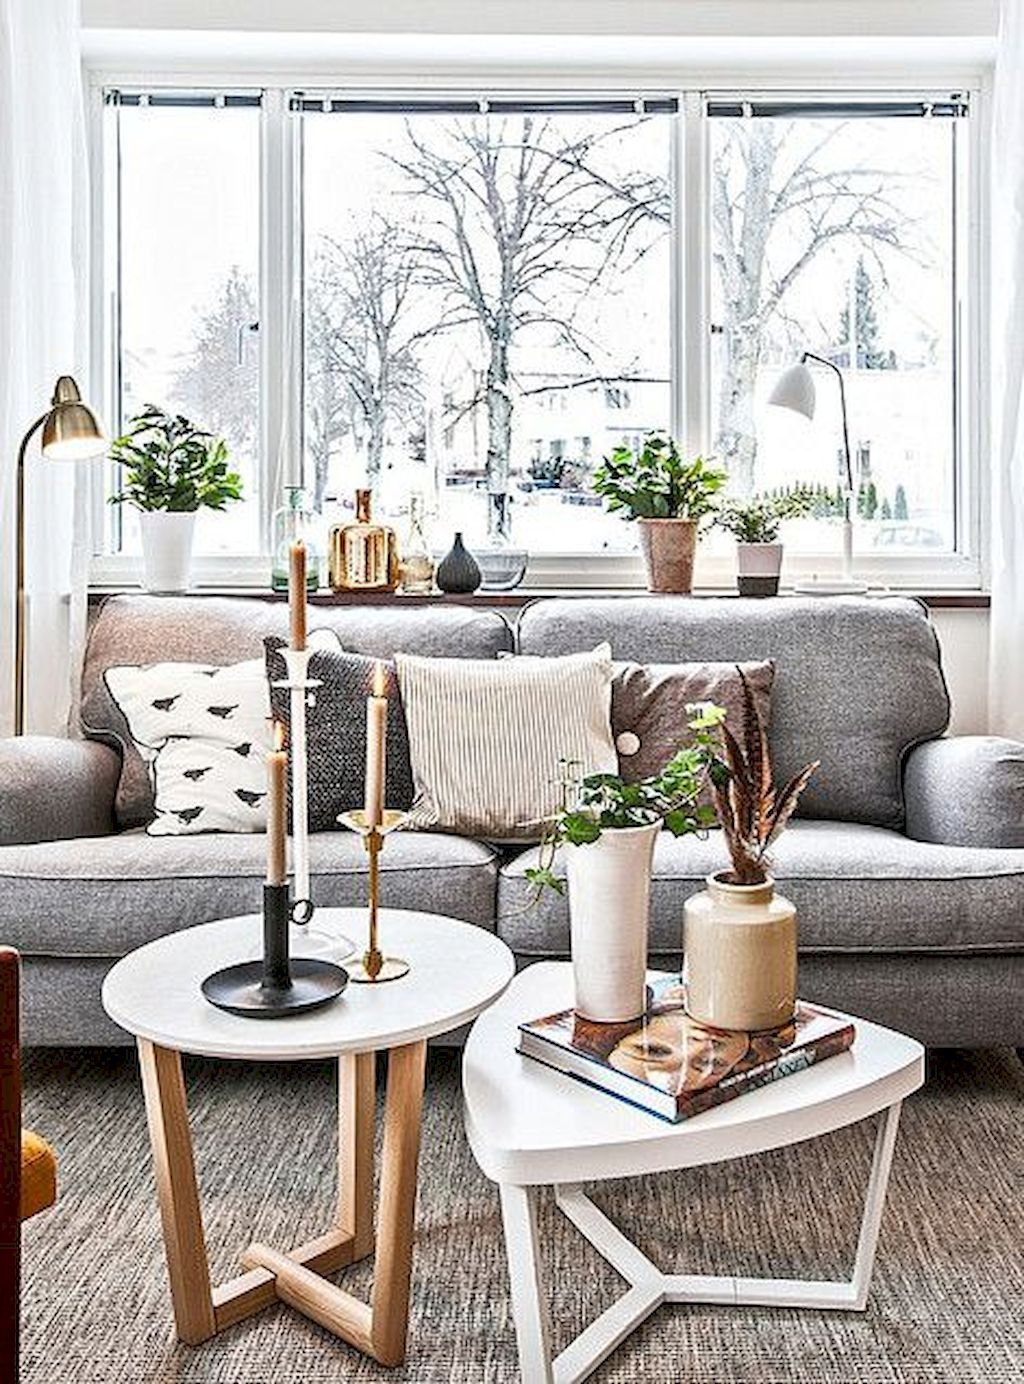 Cool 66 Stunning Small Living Room Decor Ideas on a Budget https ...